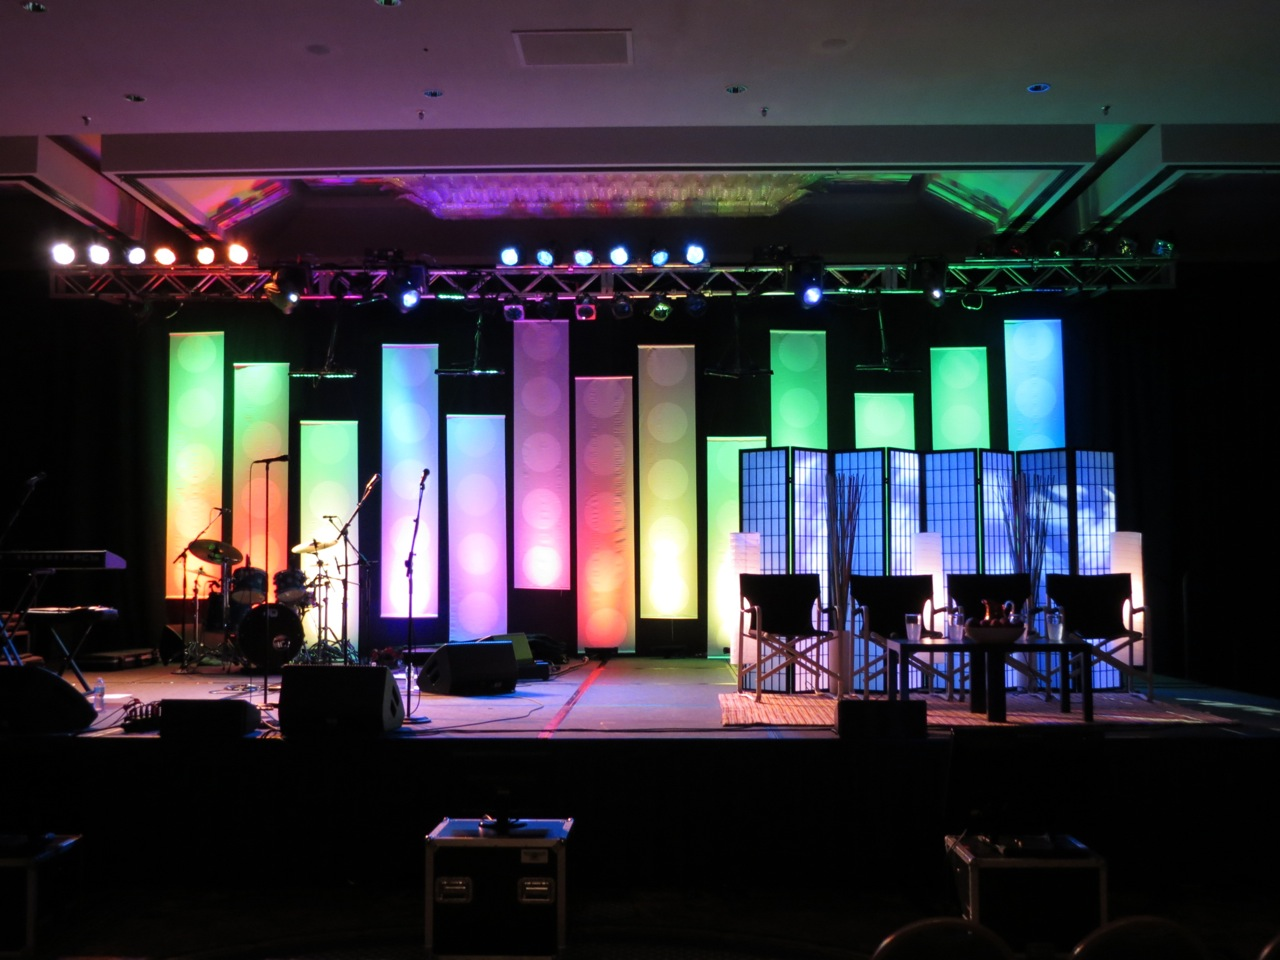 dot banners church stage design ideas stage design ideas - Church Design Ideas